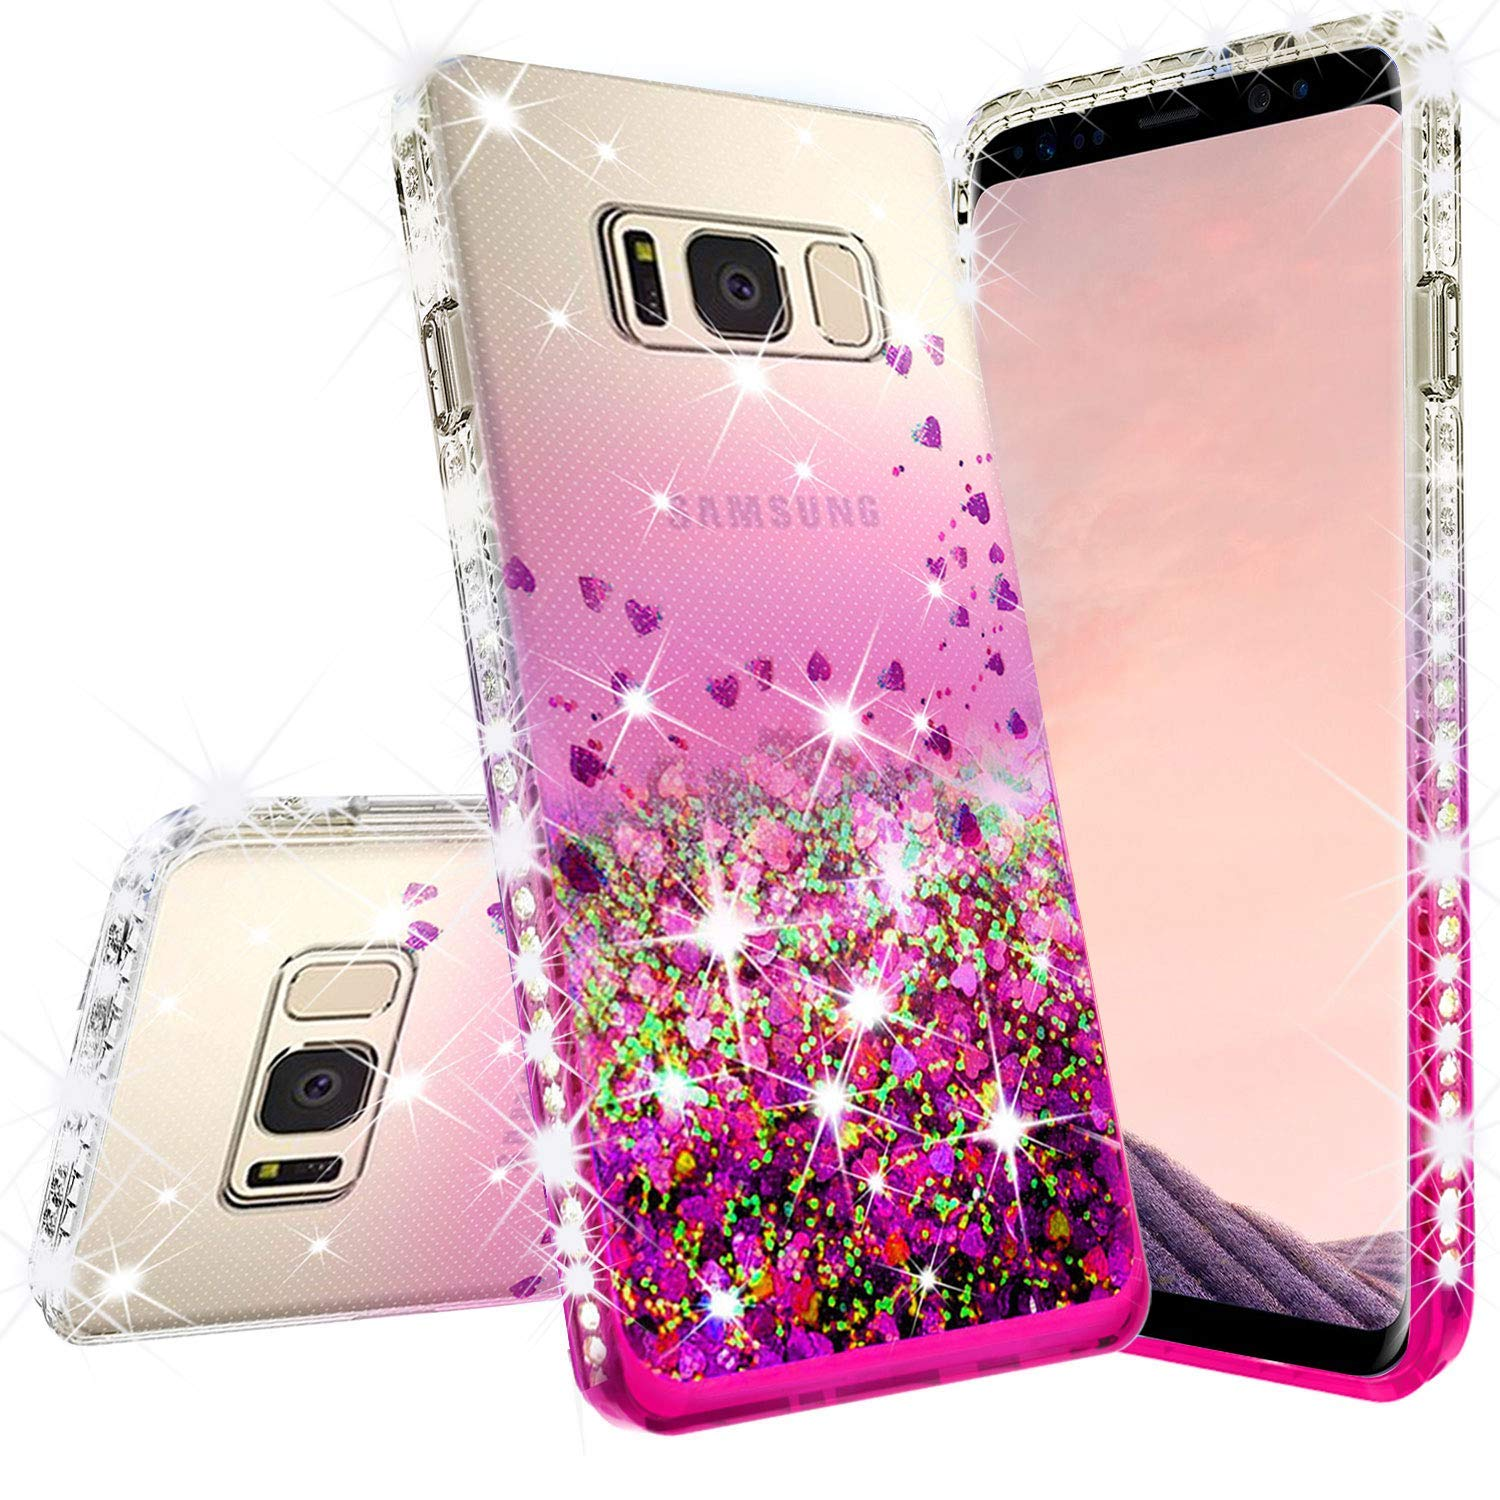 Samsung Galaxy S9 Plus Case w/[Temper Glass Screen Protector] Liquid Glitter Phone Case Waterfall Floating Quicksand Bling Sparkle Cute Protective Girls Women Cover for Galaxy S9 Plus - Pink/Clear